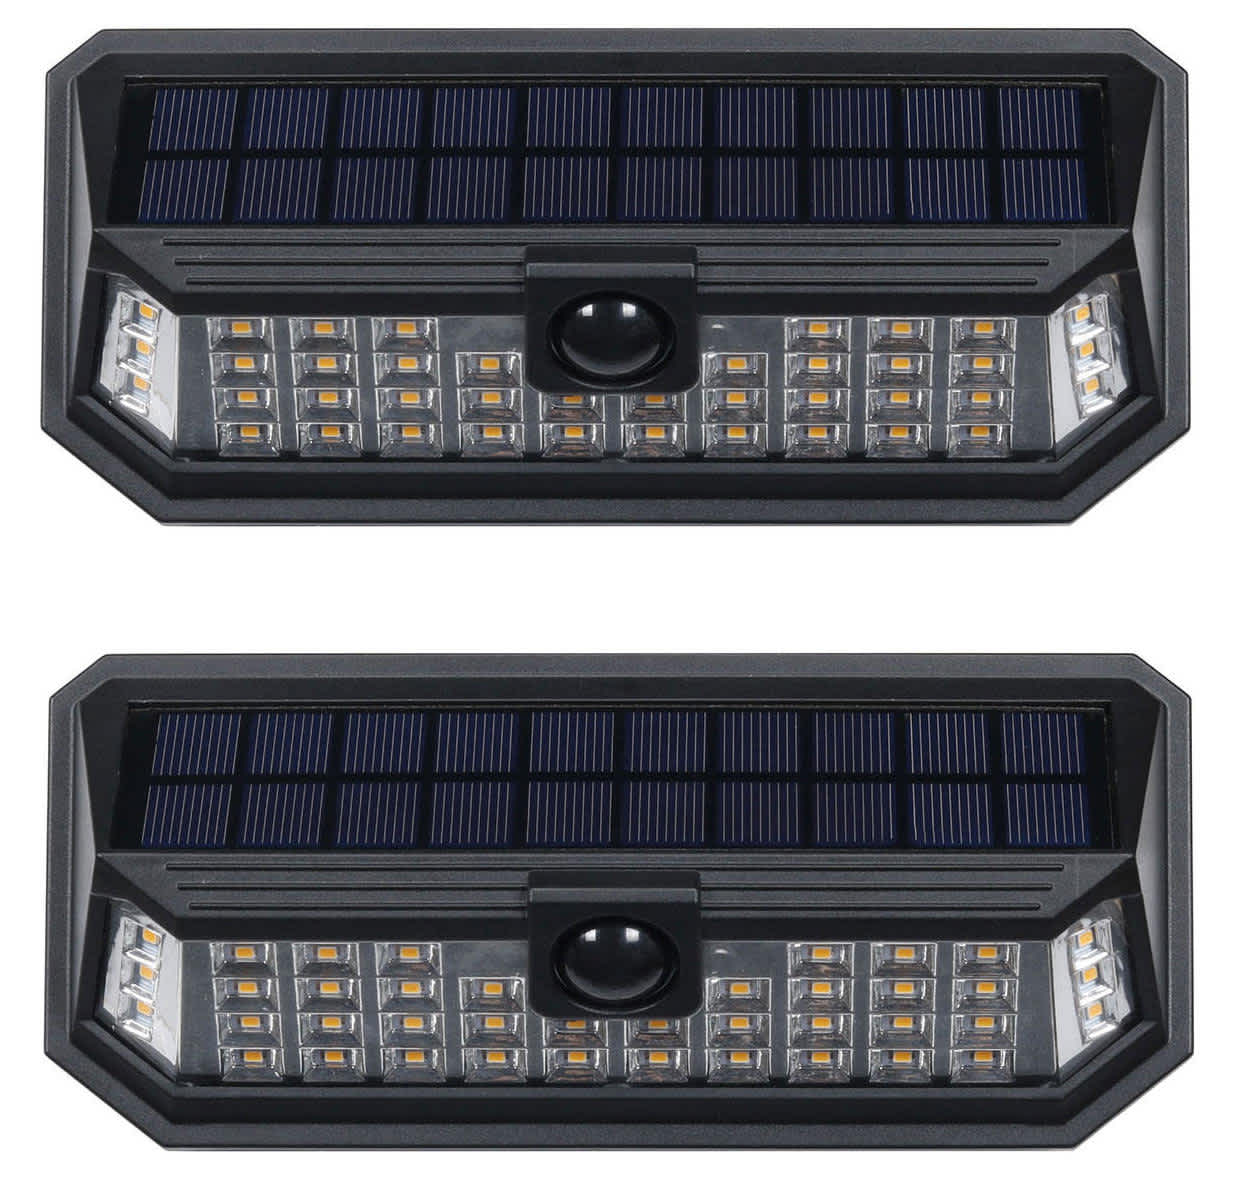 Westinghouse 1,200-Lumen Linked Solar Wall Light 2-Pack